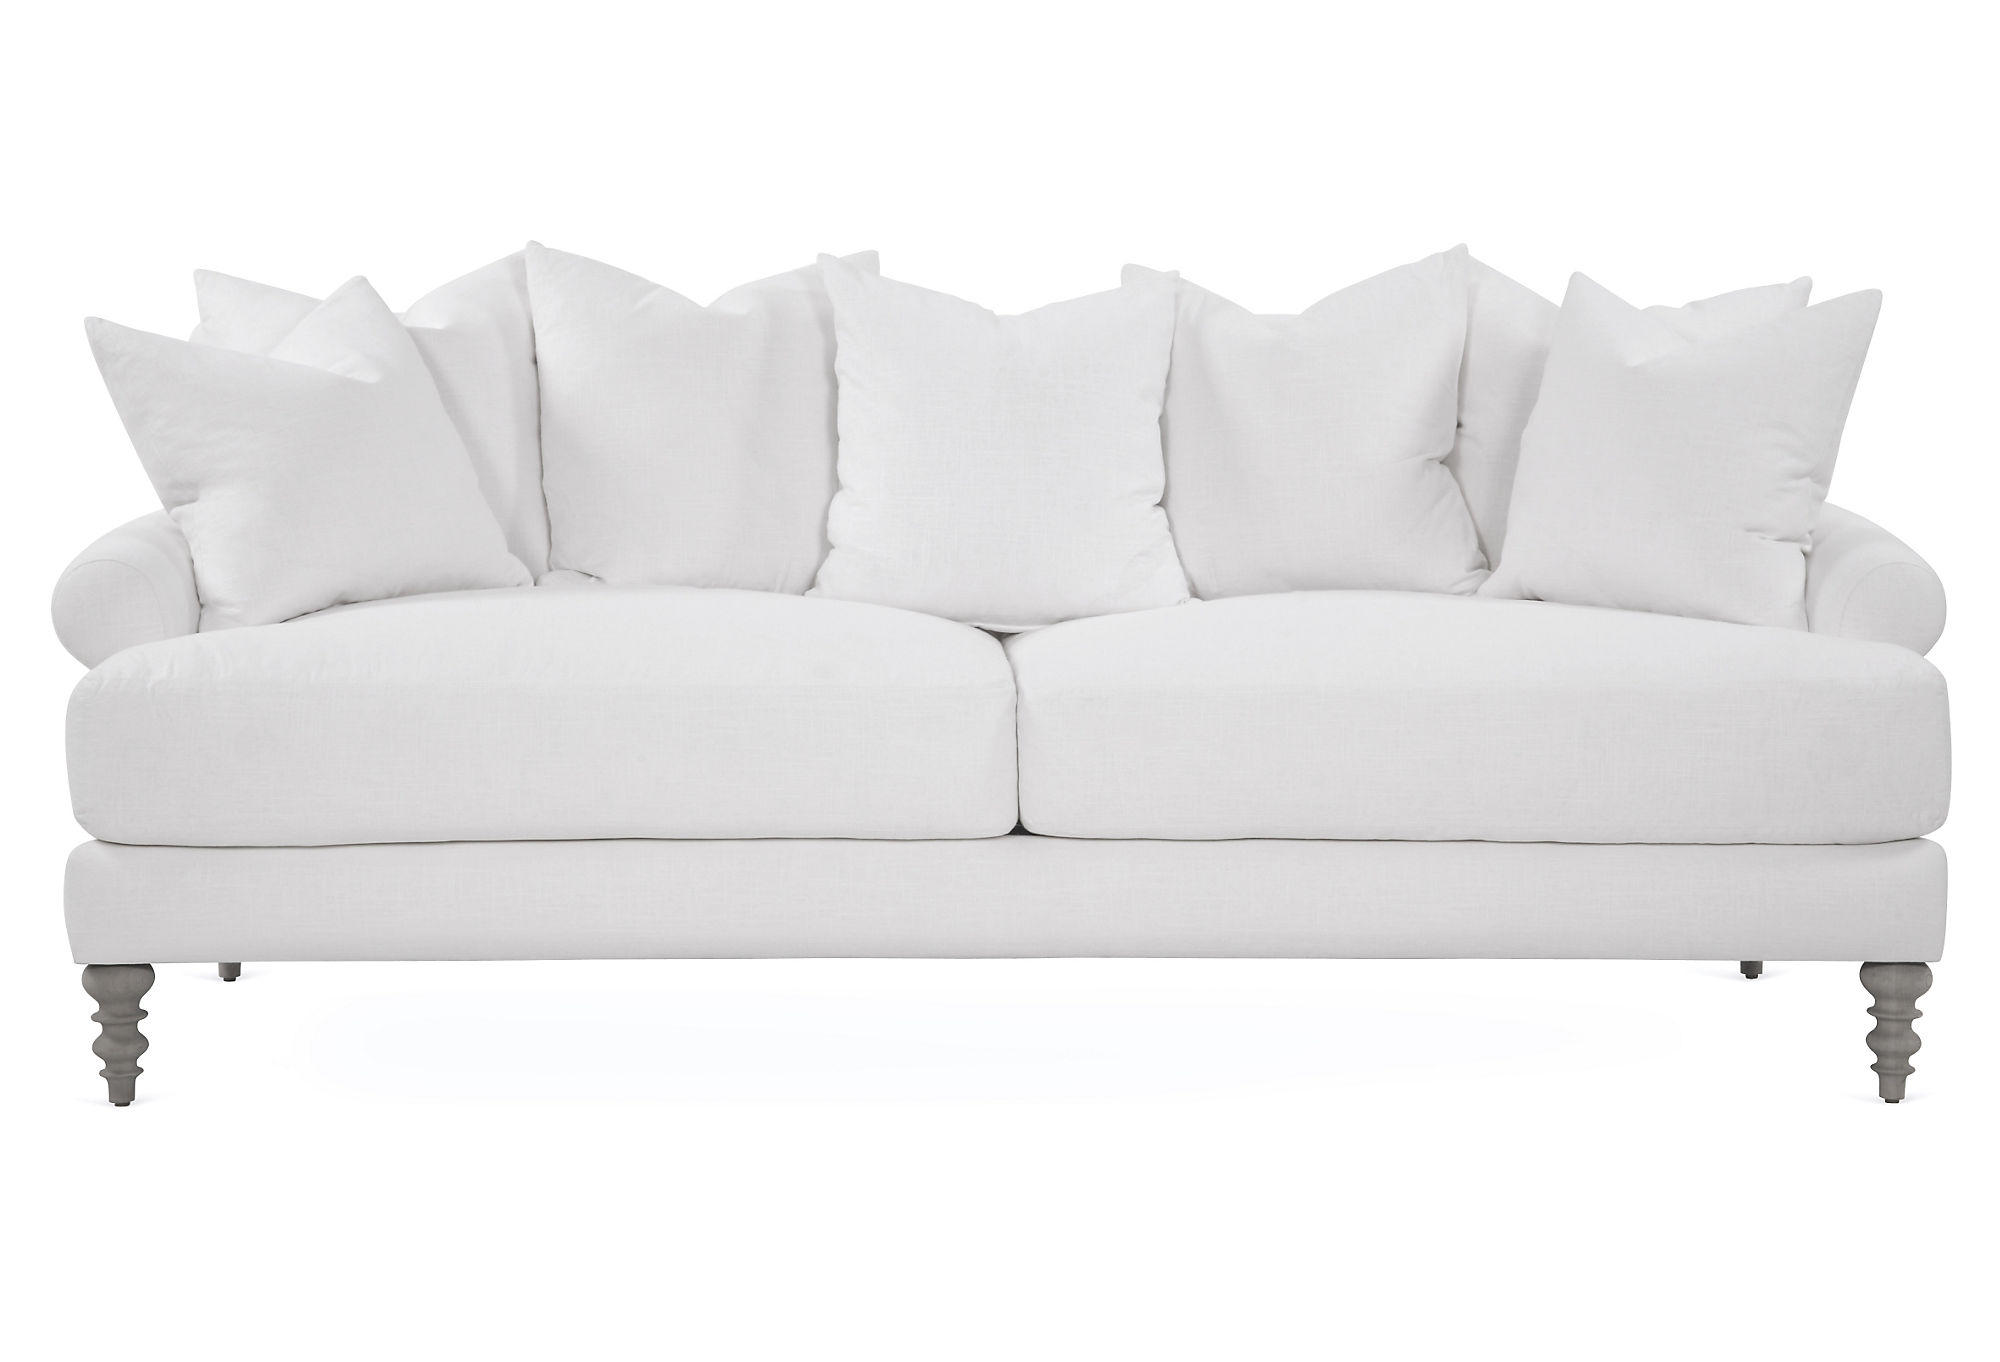 Linen sofa white sofas loveseats from one kings lane for White linen sectional sofa